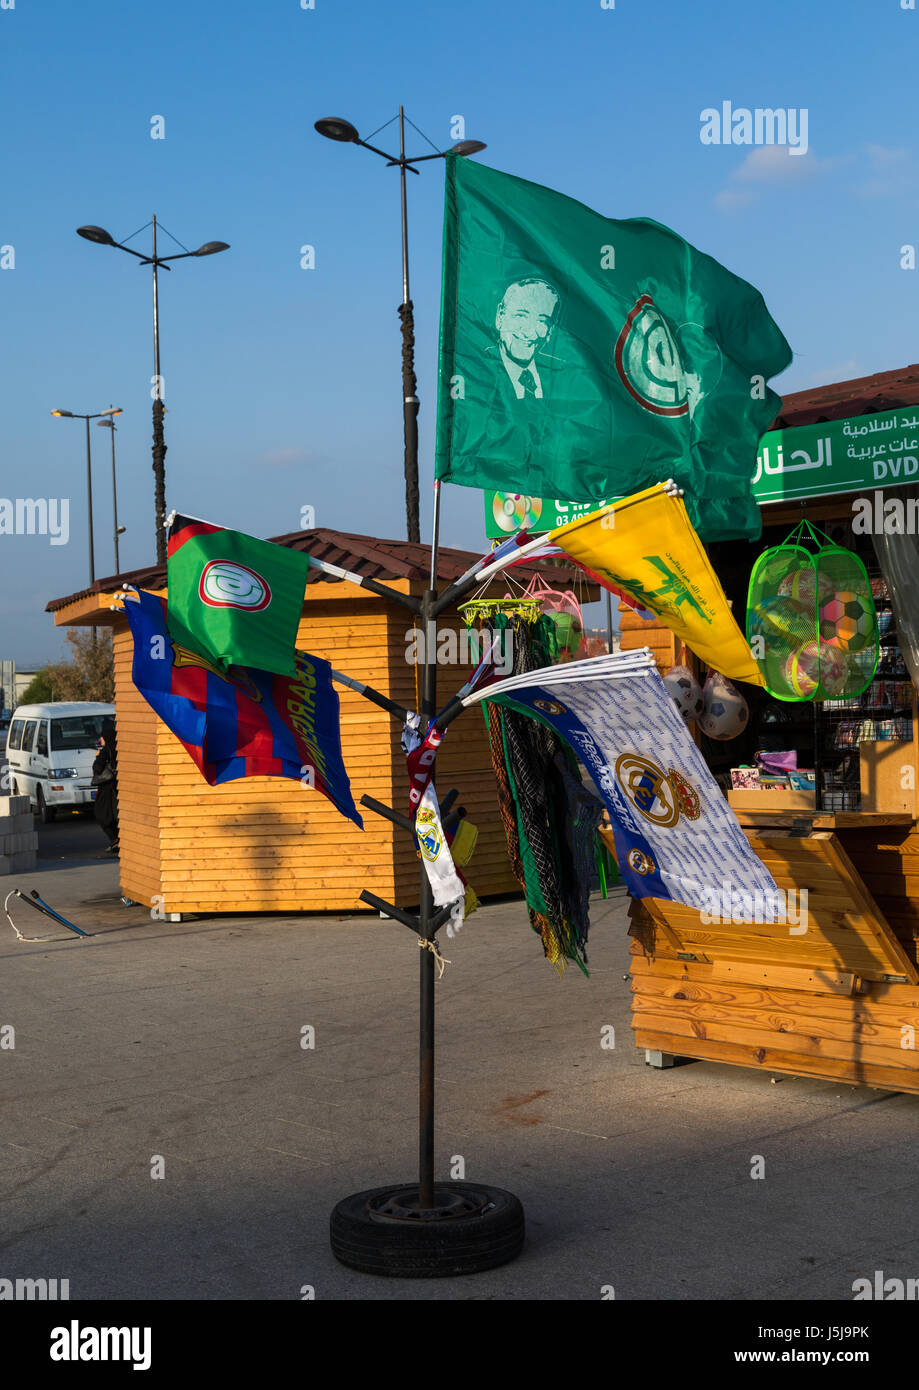 Flags with Hezbollah logo for sale with Barcelona and Madrid ones as tourist souvenirs, South Governorate, Tyre, - Stock-Bilder